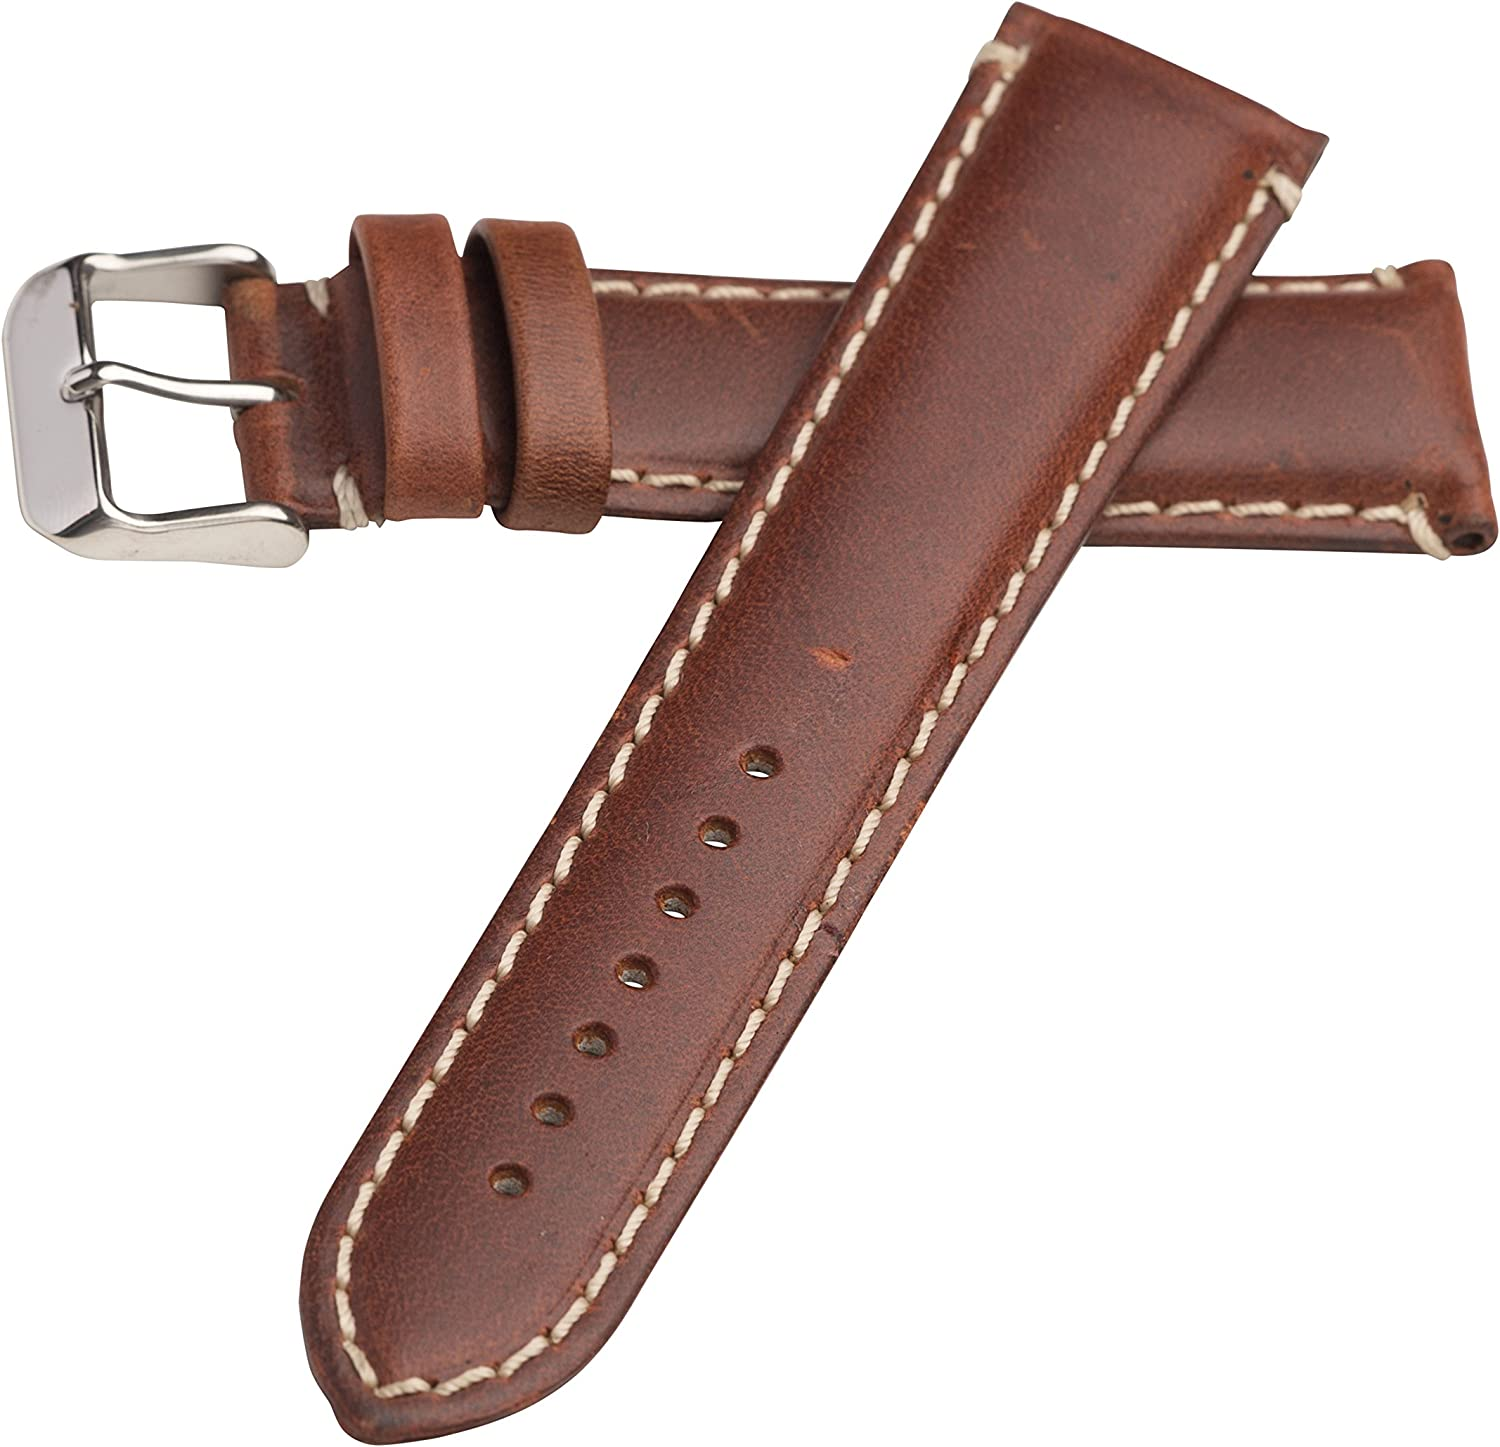 Hadley Roma MS885 22mm Watch Band Chestnut Oil Tan Leather Contrast Stitched